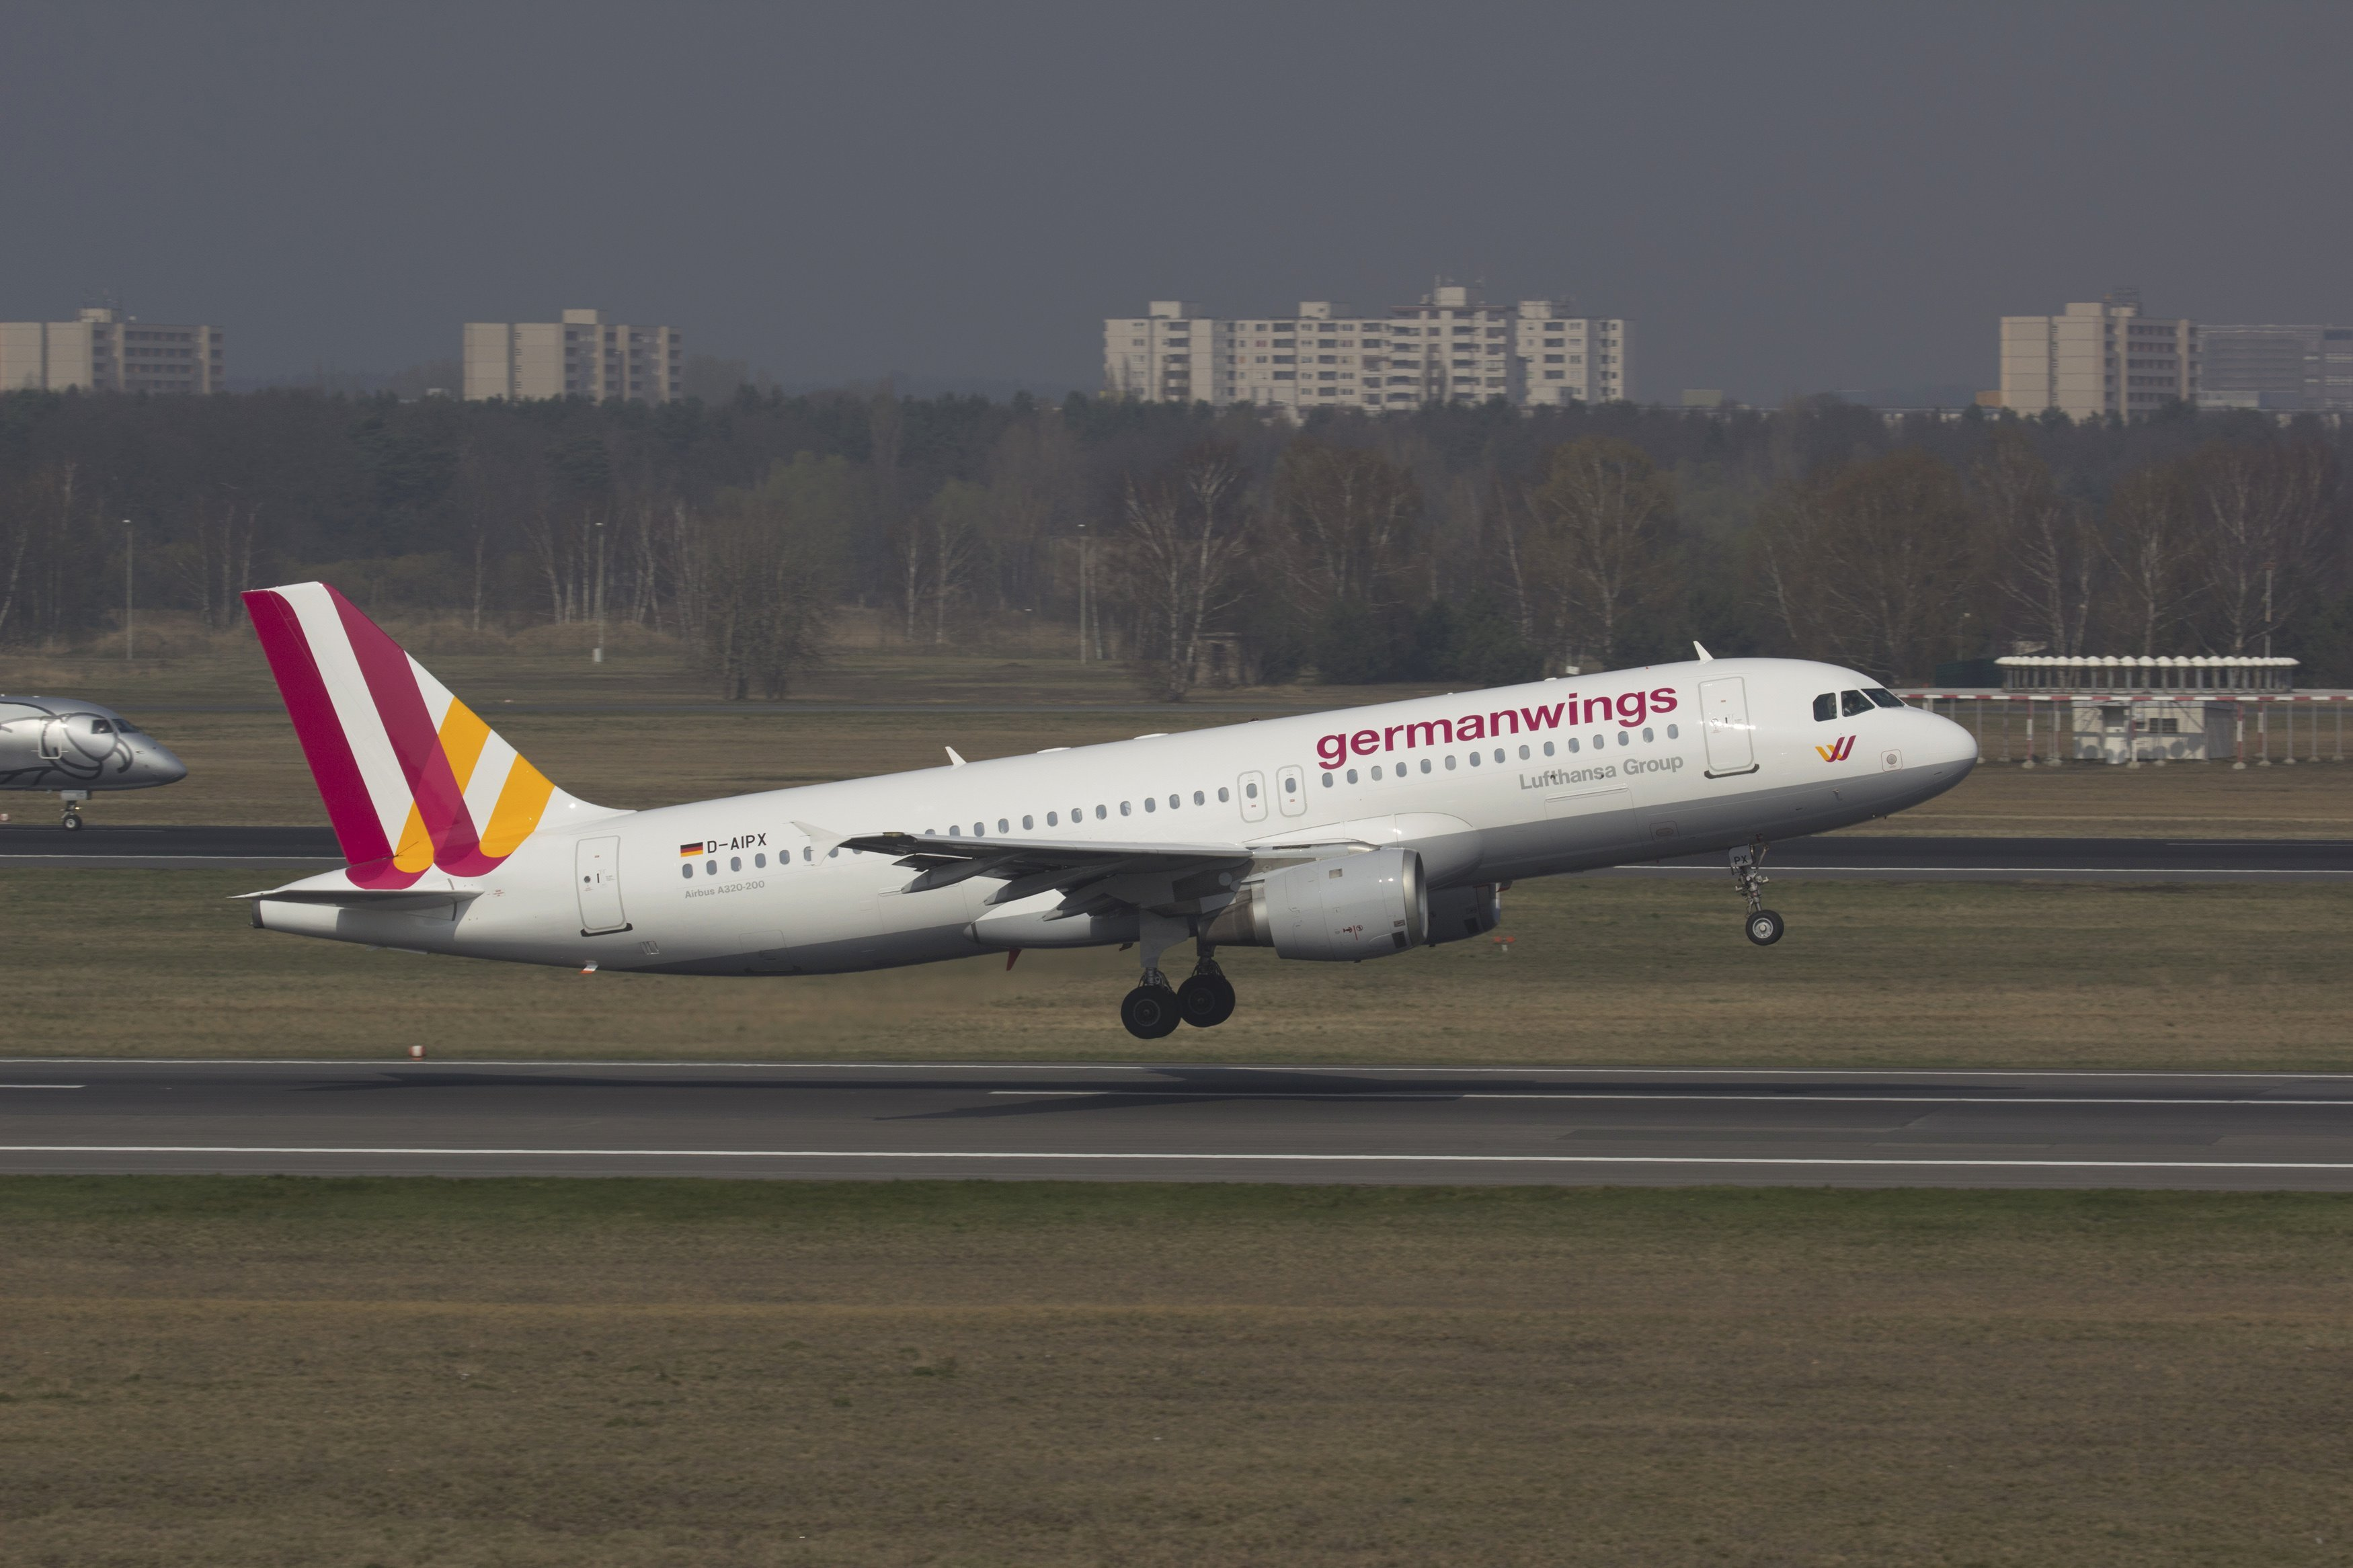 A Germanwings Airbus A320 is seen at the Berlin airport, March 29, 2014. An Airbus plane of the same model crashed in southern France en route from Barcelona to Duesseldorf, on March 24, 2015 police and aviation officials said.